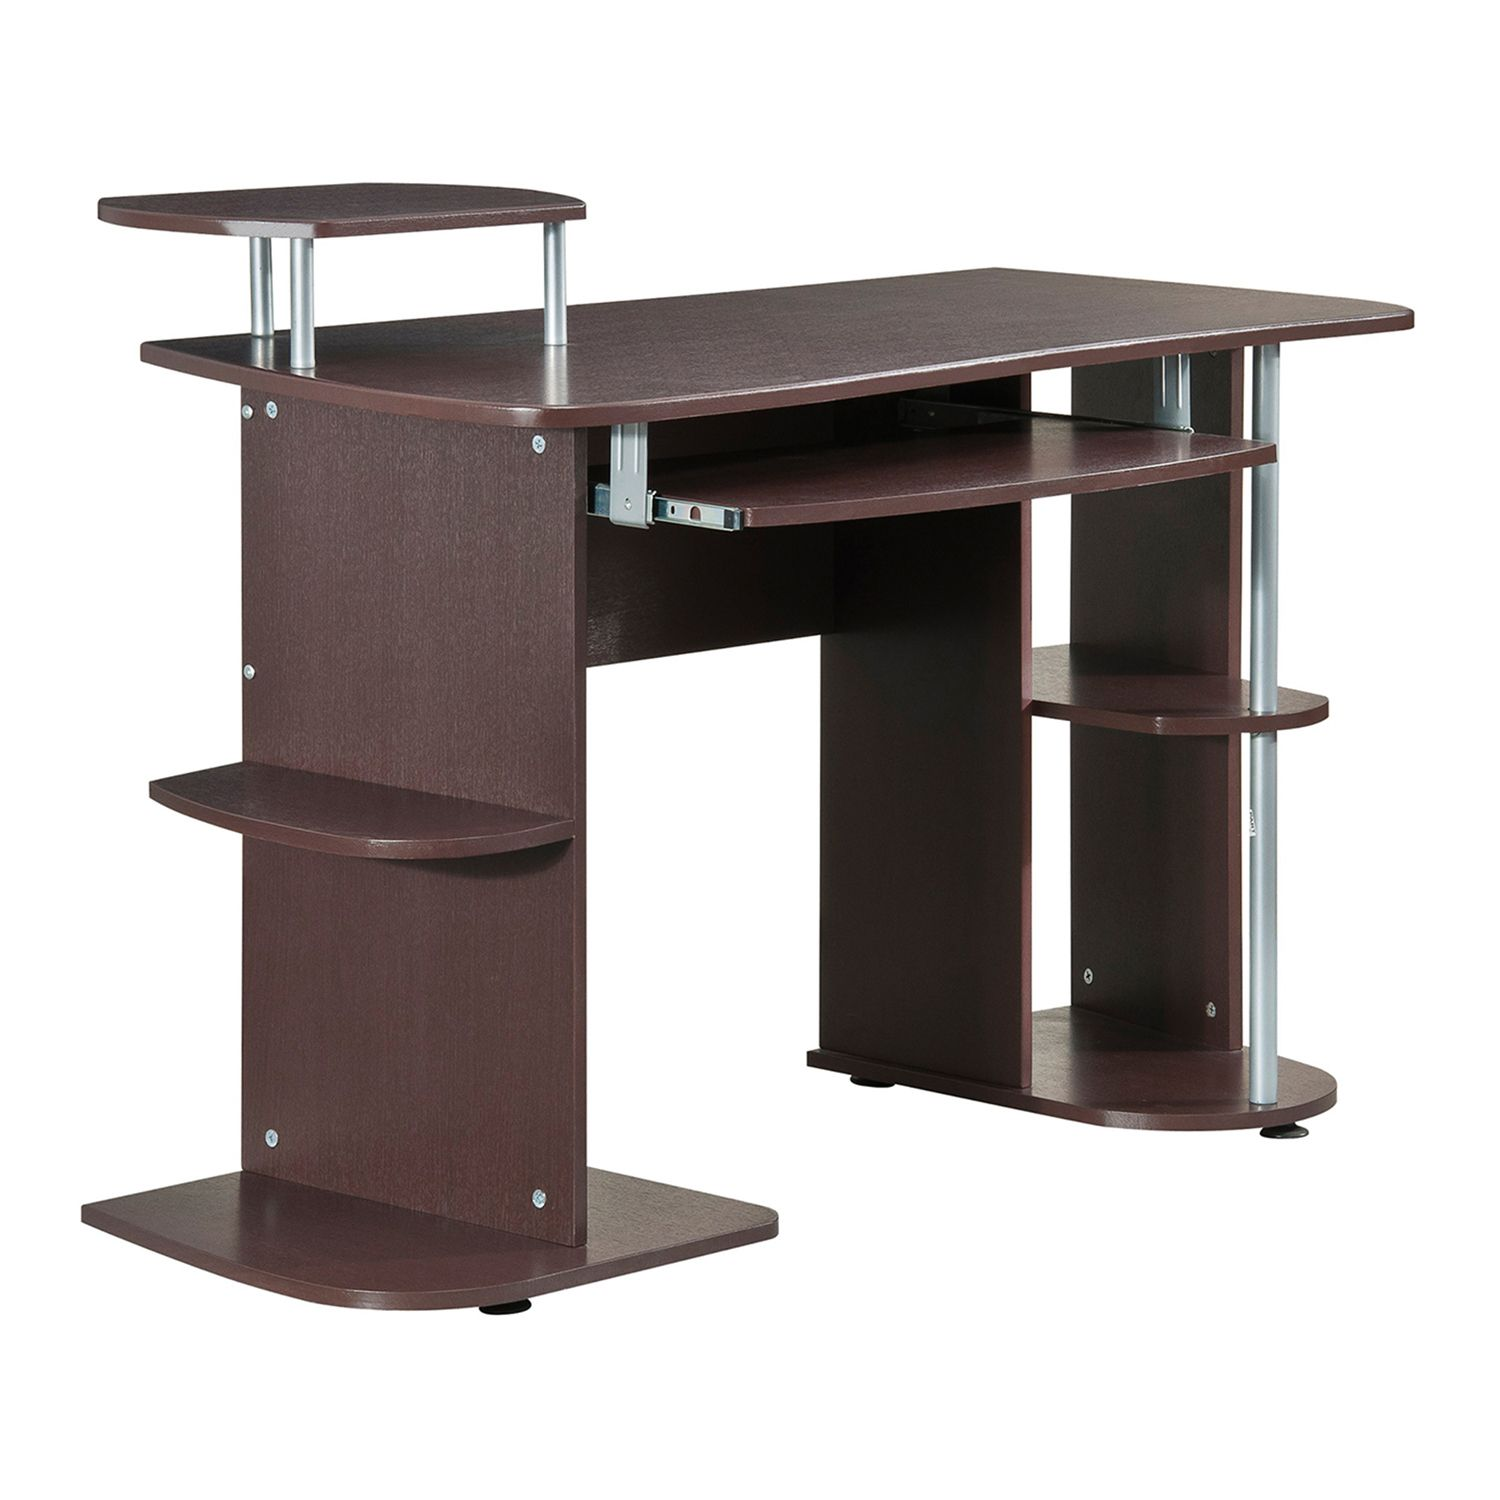 Regular. $199.99. Techni Mobili Pedestal Computer Desk